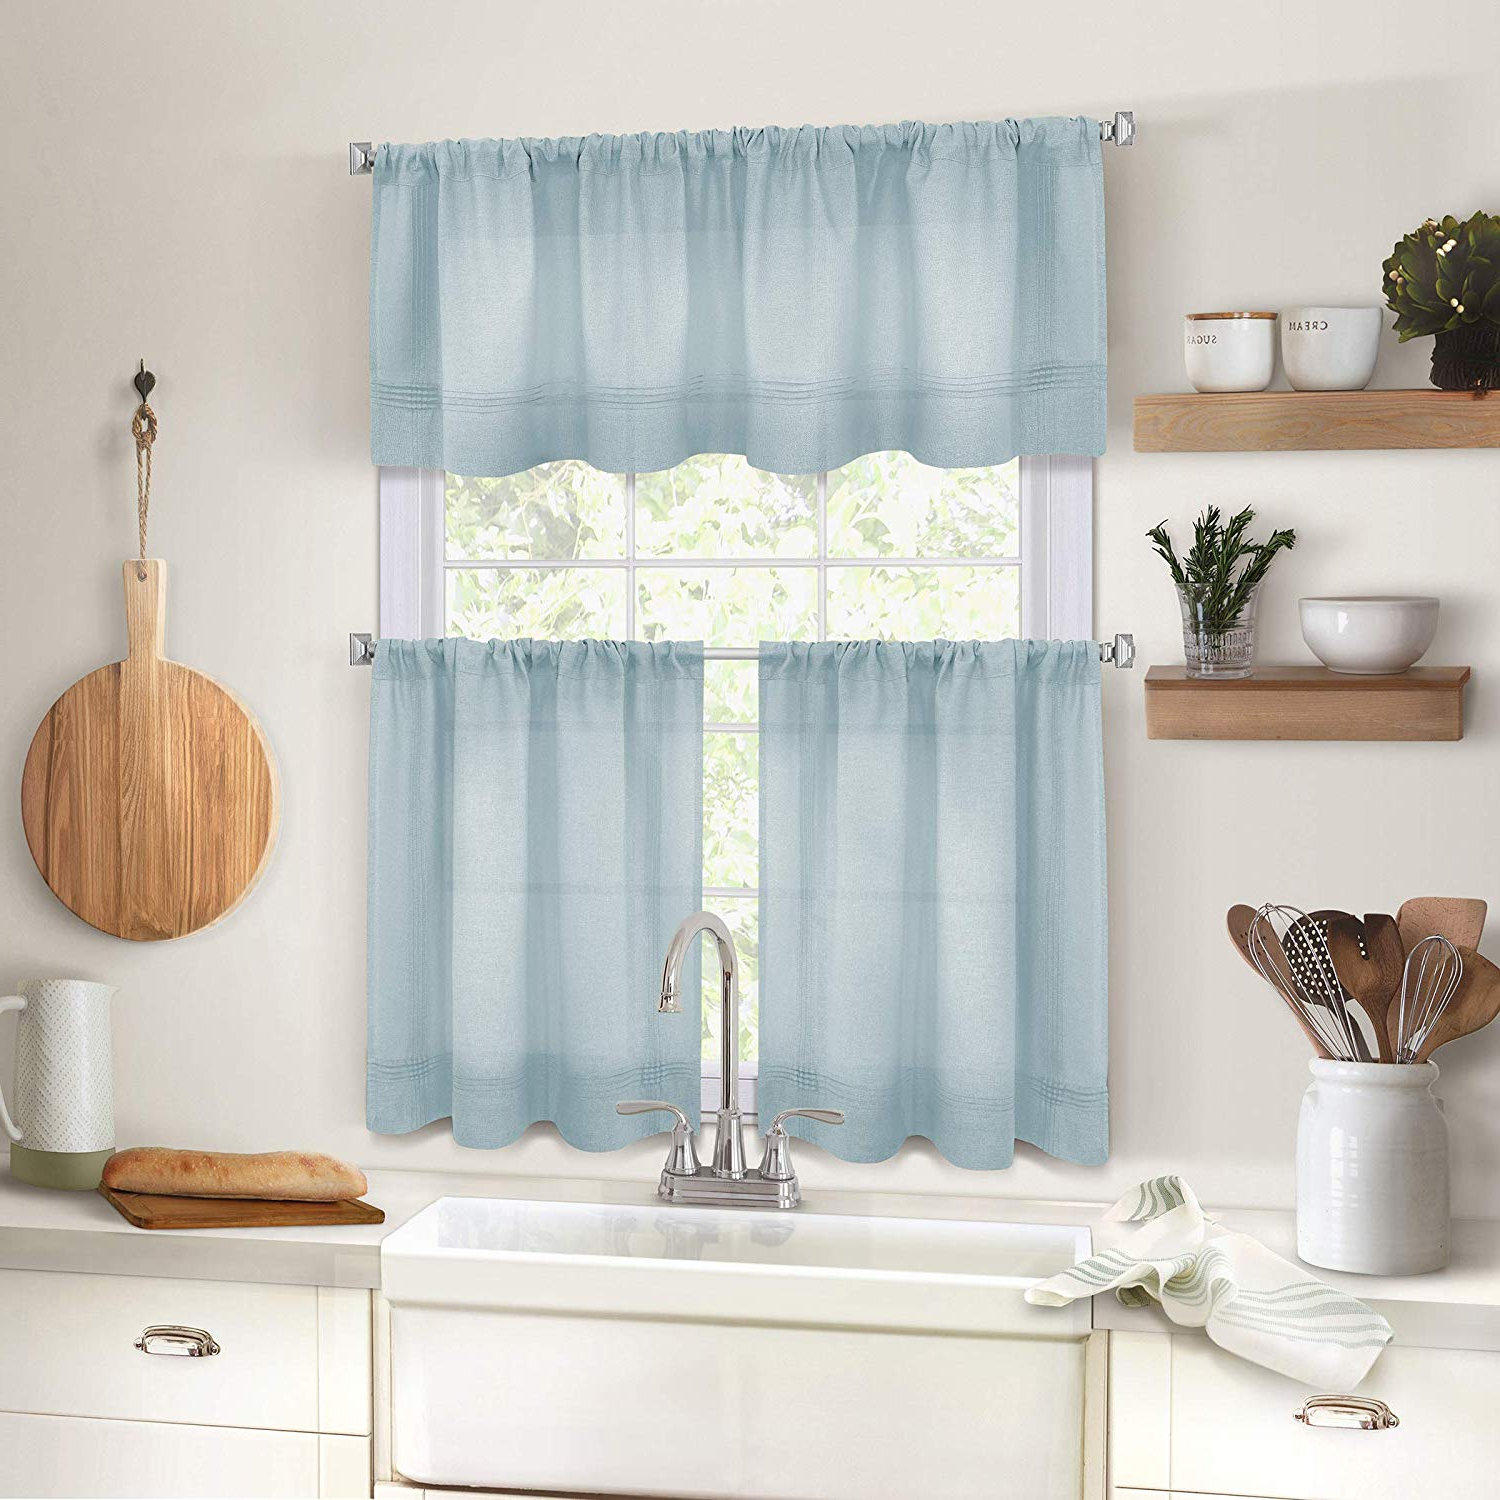 """Elrene Home Fashions Pintuck Kitchen Window Tier Set Of 2, 30"""" X 24"""",  Mineral, 2 Pieces With Regard To Well Liked Pintuck Kitchen Window Tiers (Gallery 3 of 20)"""